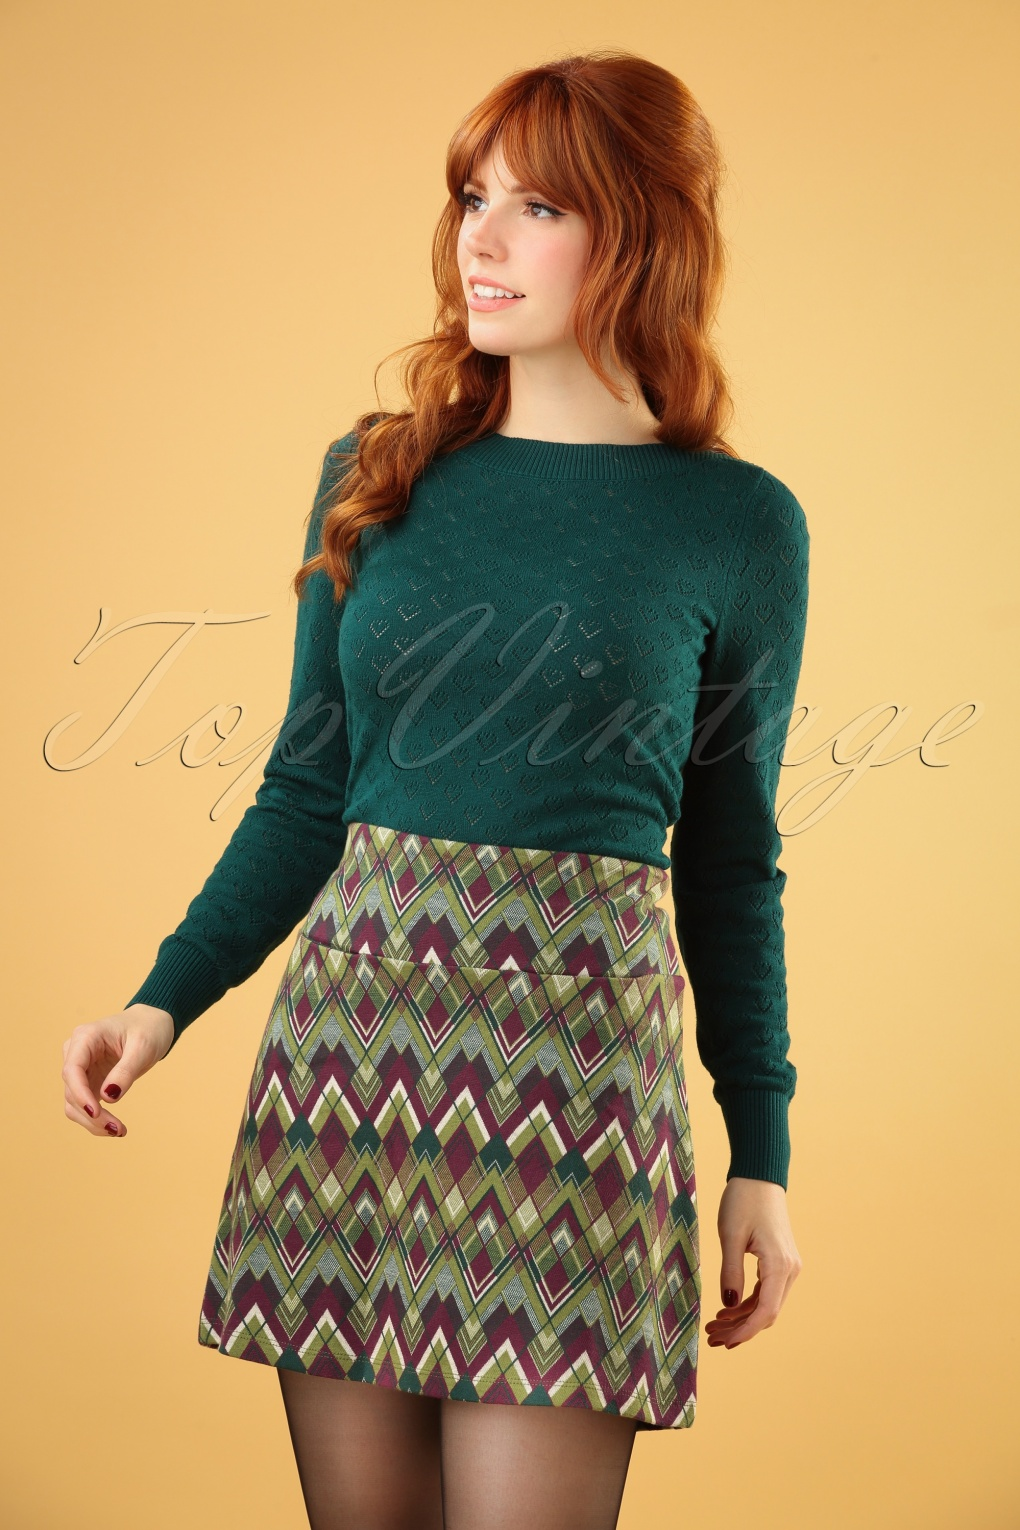 Retro Skirts: Vintage, Pencil, Circle, & Plus Sizes 60s Olivia Skye Skirt in Posey Green £62.35 AT vintagedancer.com